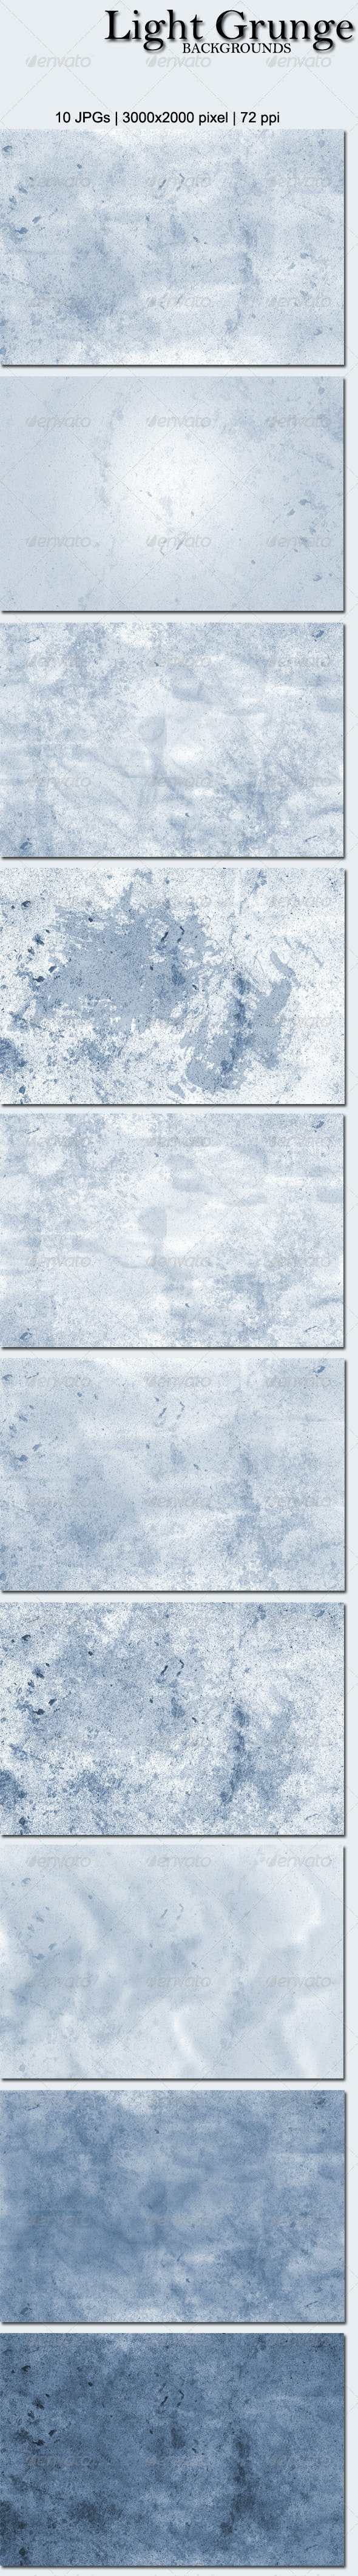 10 Light Grunge Backgrounds - Miscellaneous Backgrounds